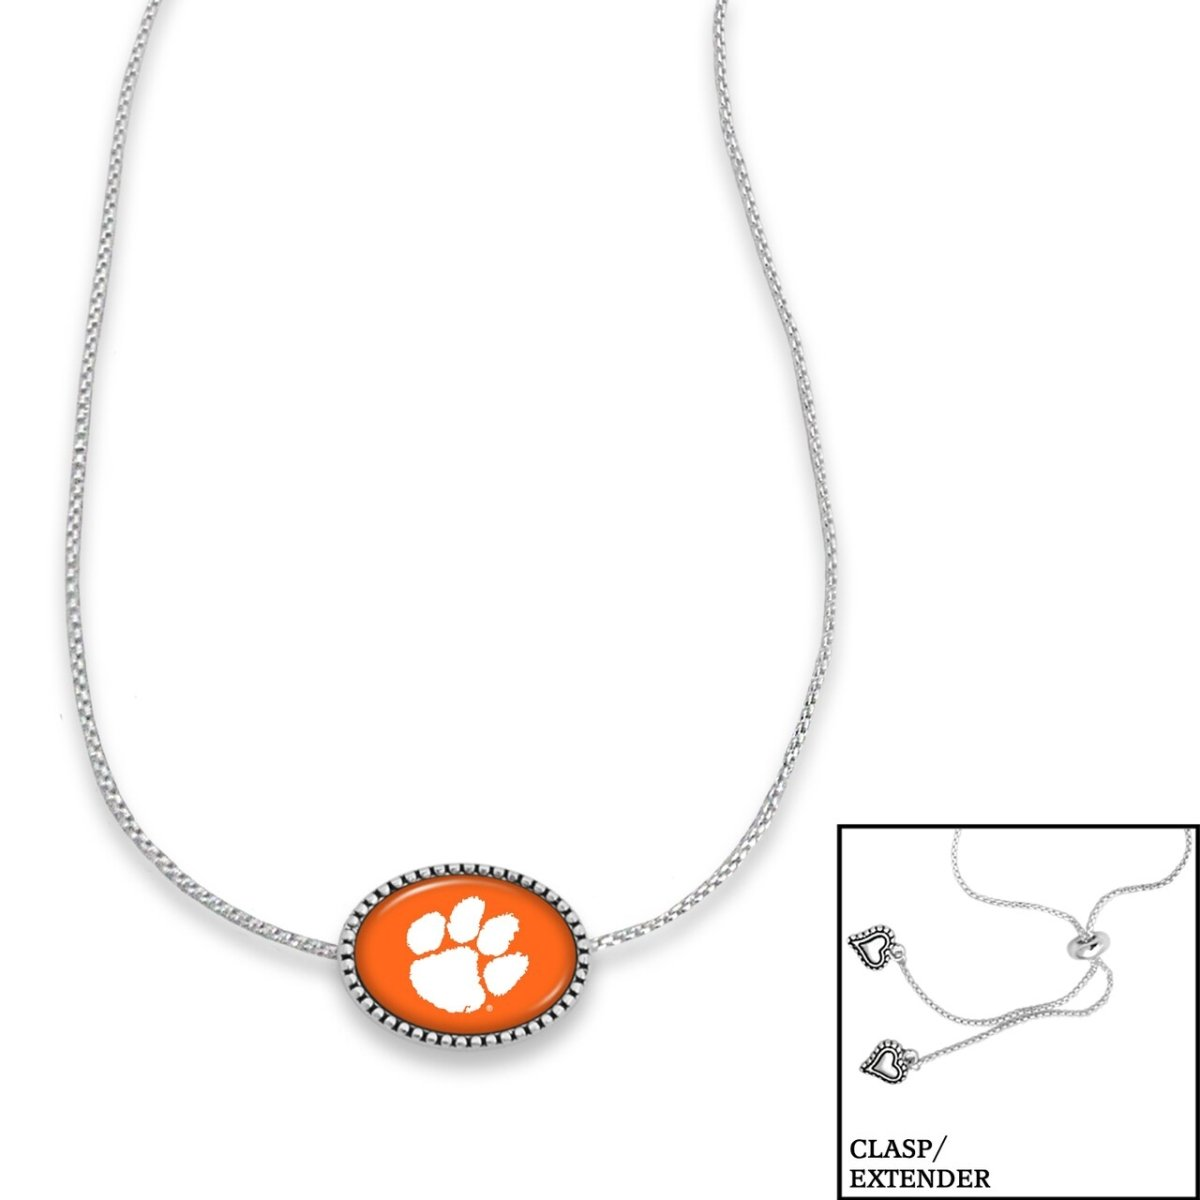 Silver Adjustable Slide Necklace Oval Orange With White Paw - Mr. Knickerbocker